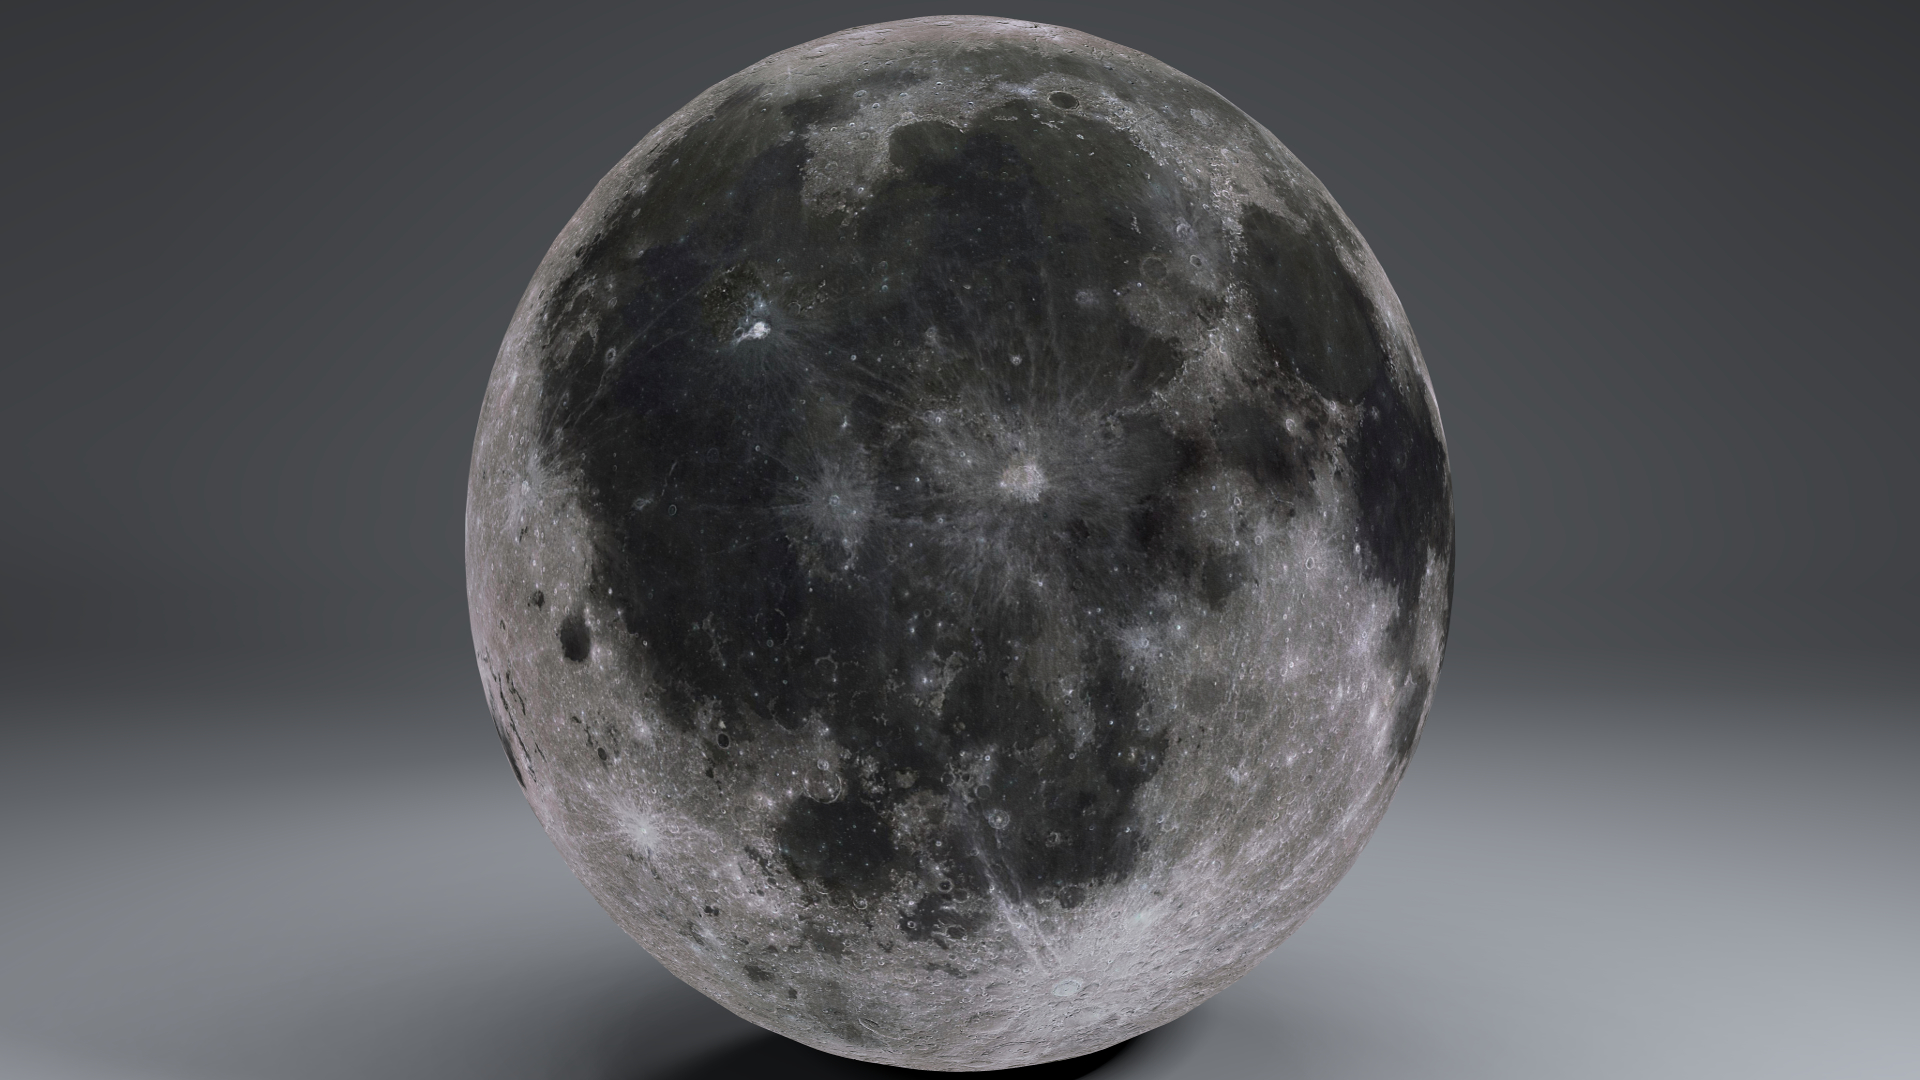 moonglobe 4k 3d model 3ds fbx blend dae obj 221757